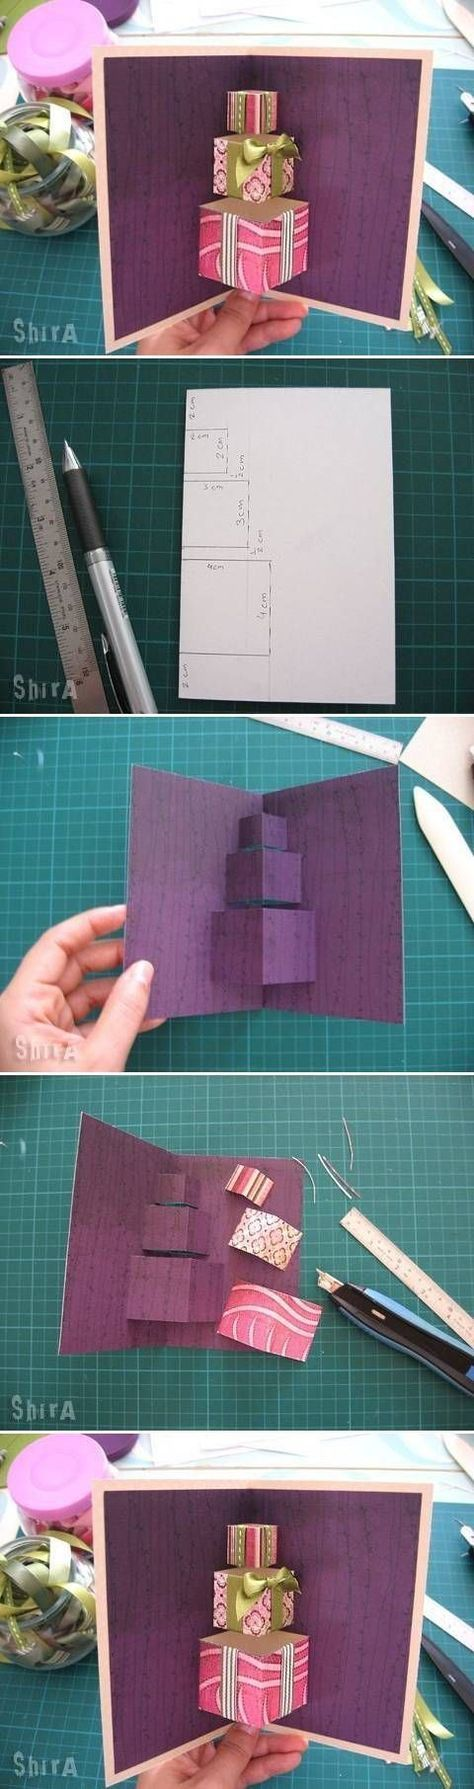 cardmaking phtoto  tutorial gift boxes pop-up card by Butterfly Kisses ... luv that she gives measurements for this impressive yet easy-to-do pop-up ... luv it!